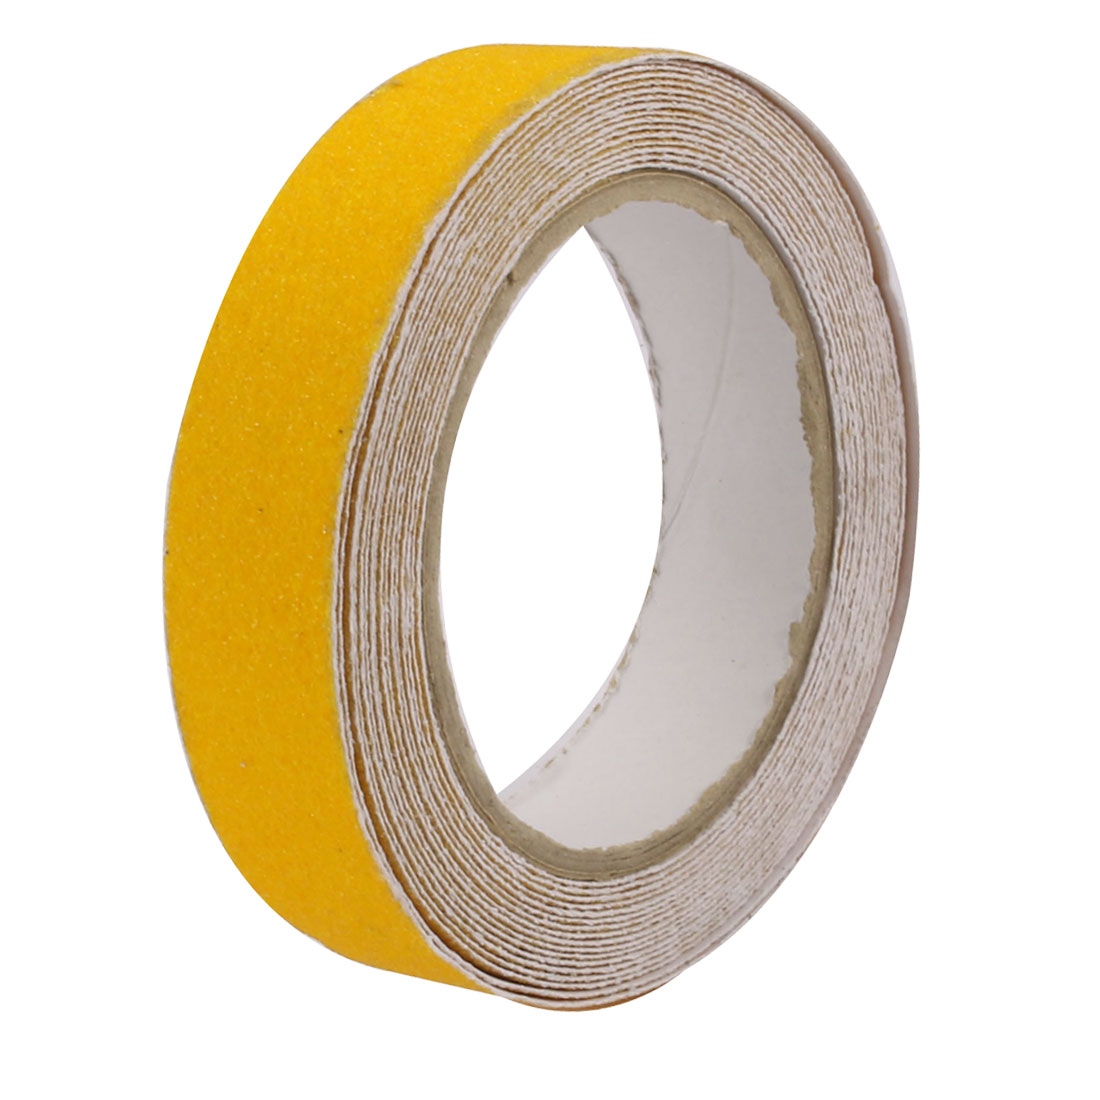 2.5cm Wide 5 Meters Long Adhesive Grit Anti Slip Tape Yellow for Stairs Floor